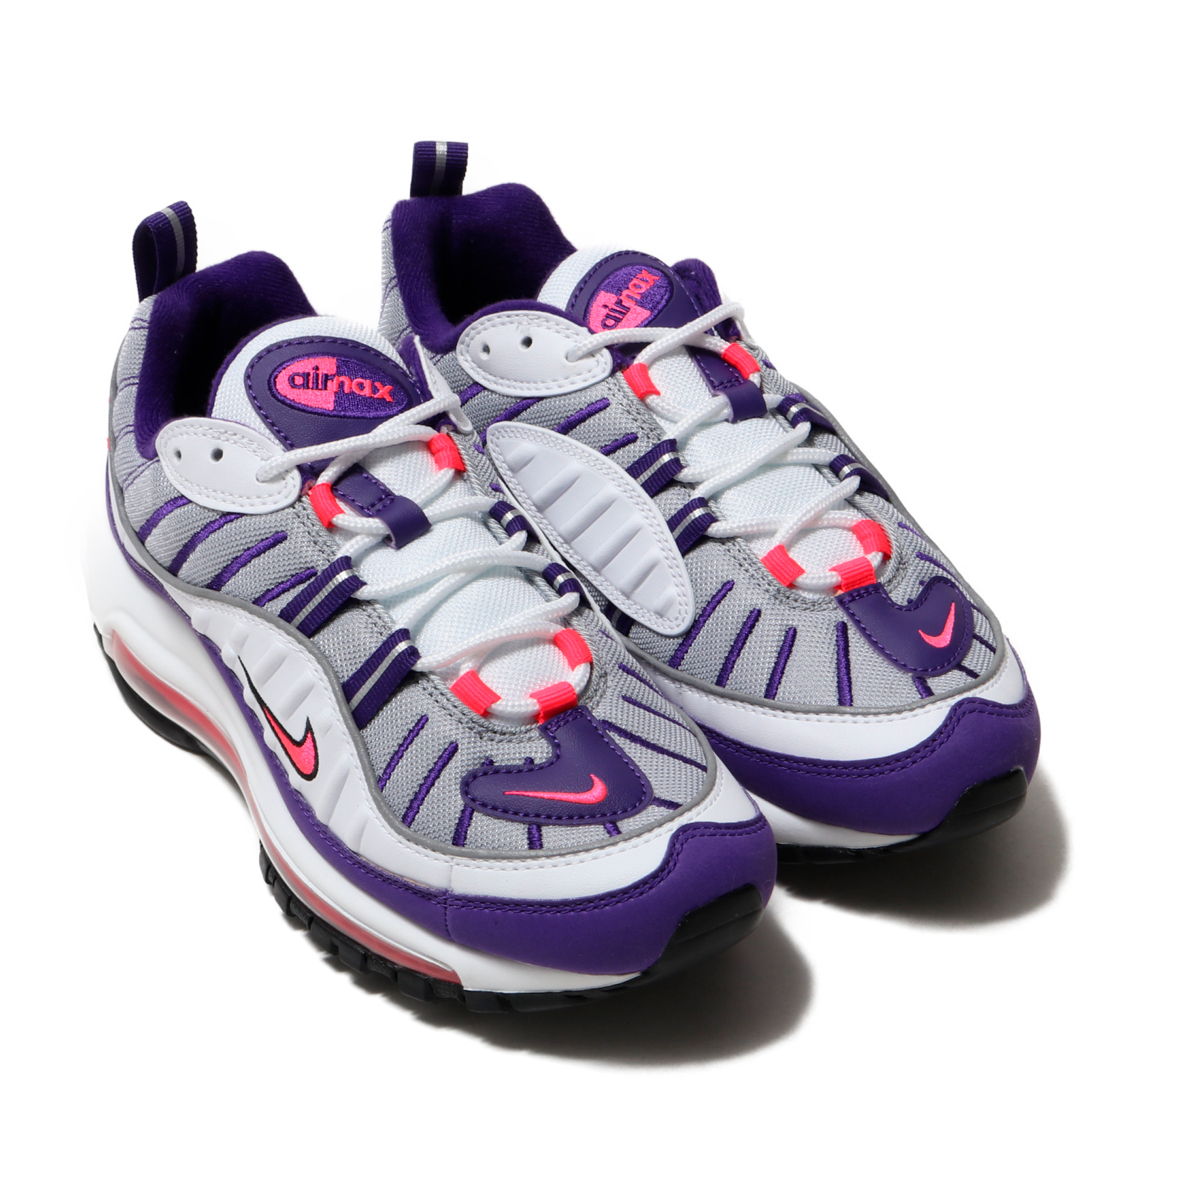 hot sale online bfc62 ff064 ... NIKE W AIR MAX 98 (WHITE RACER PINK-REFLECT SILVER-BLACK) ...